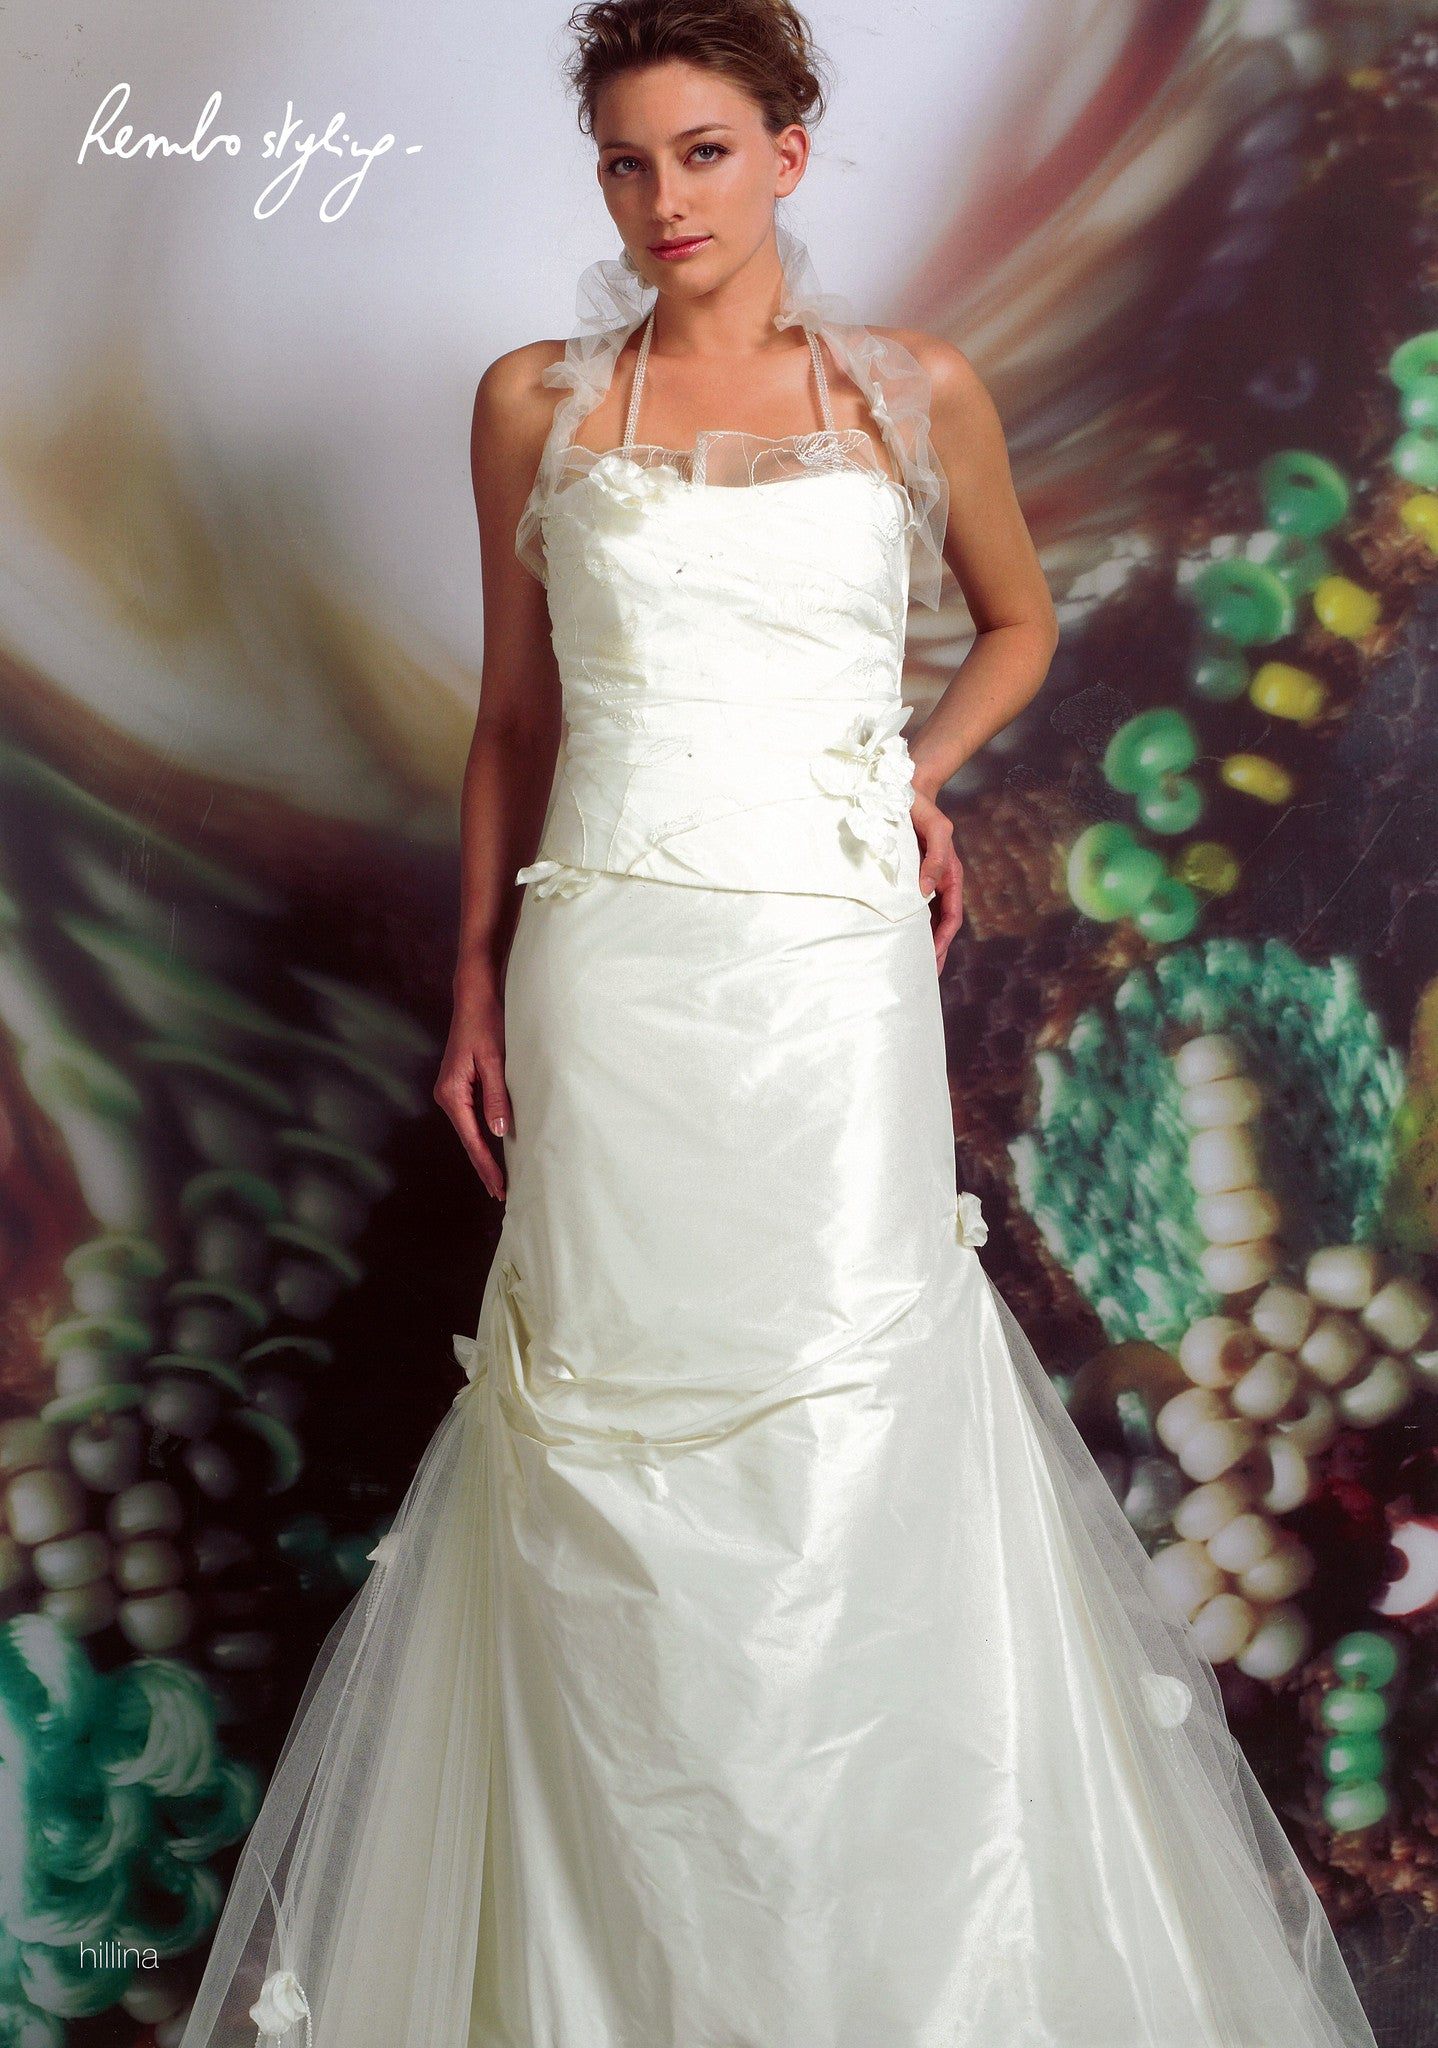 1cc263a558 Rembo styling  Hillina  sample wedding dress purchase online Europe